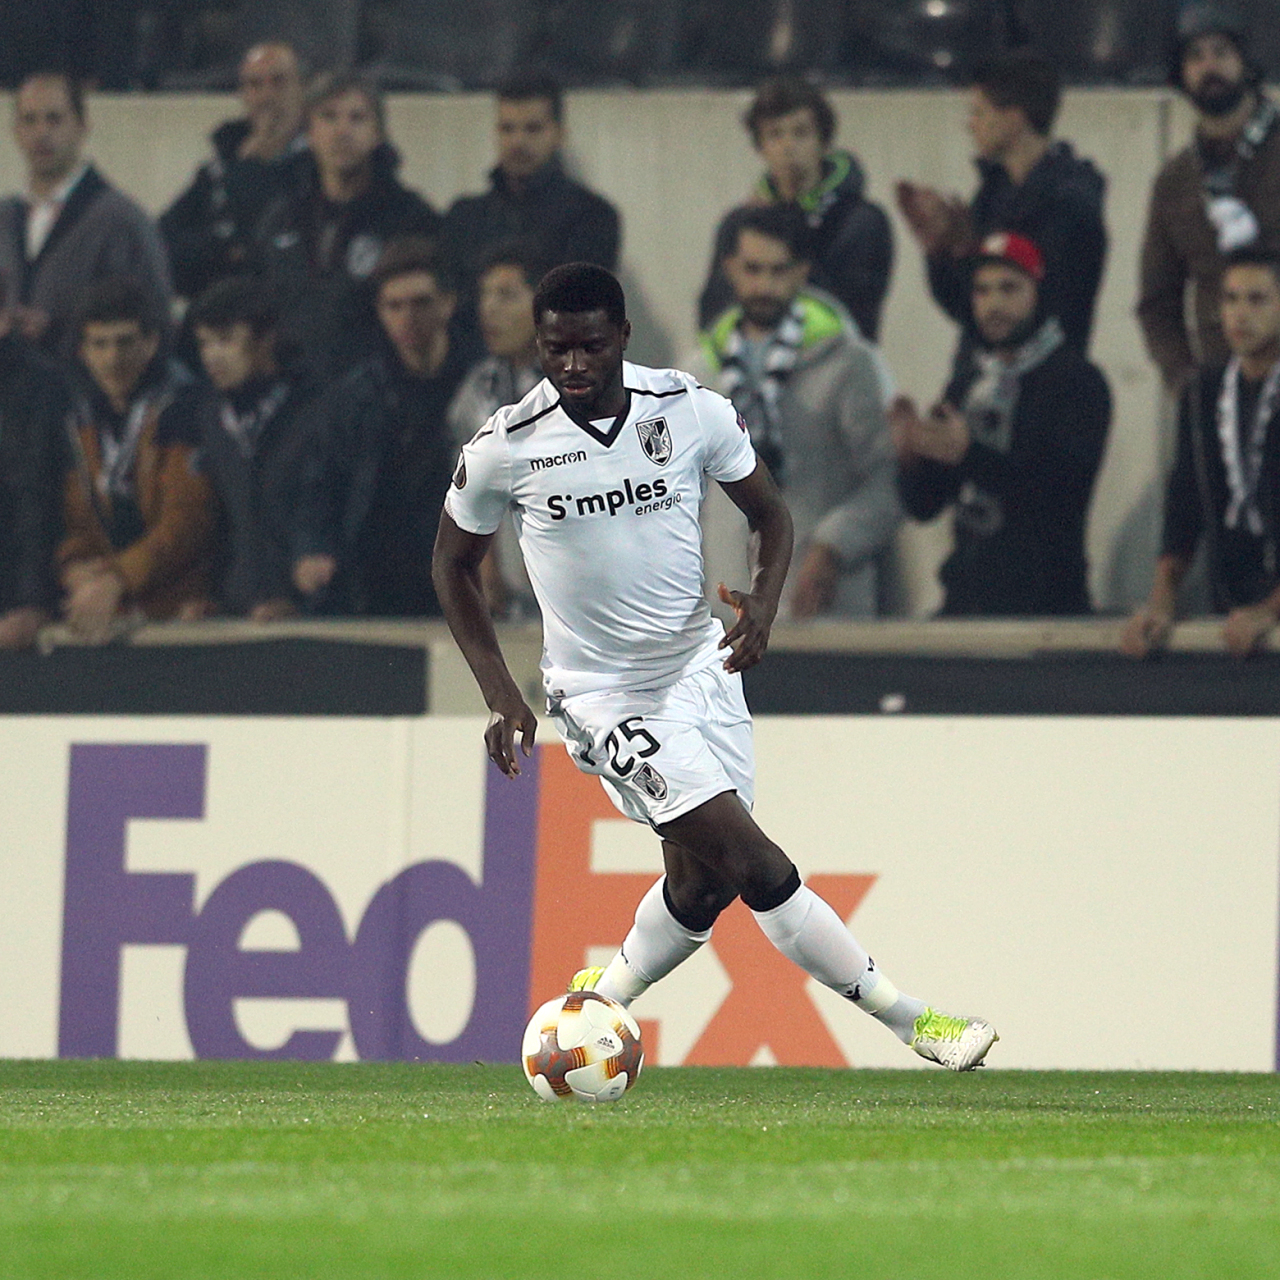 Guimaraes midfielder Alhassan Wakaso suffers knee injury and could be out until the turn of the year